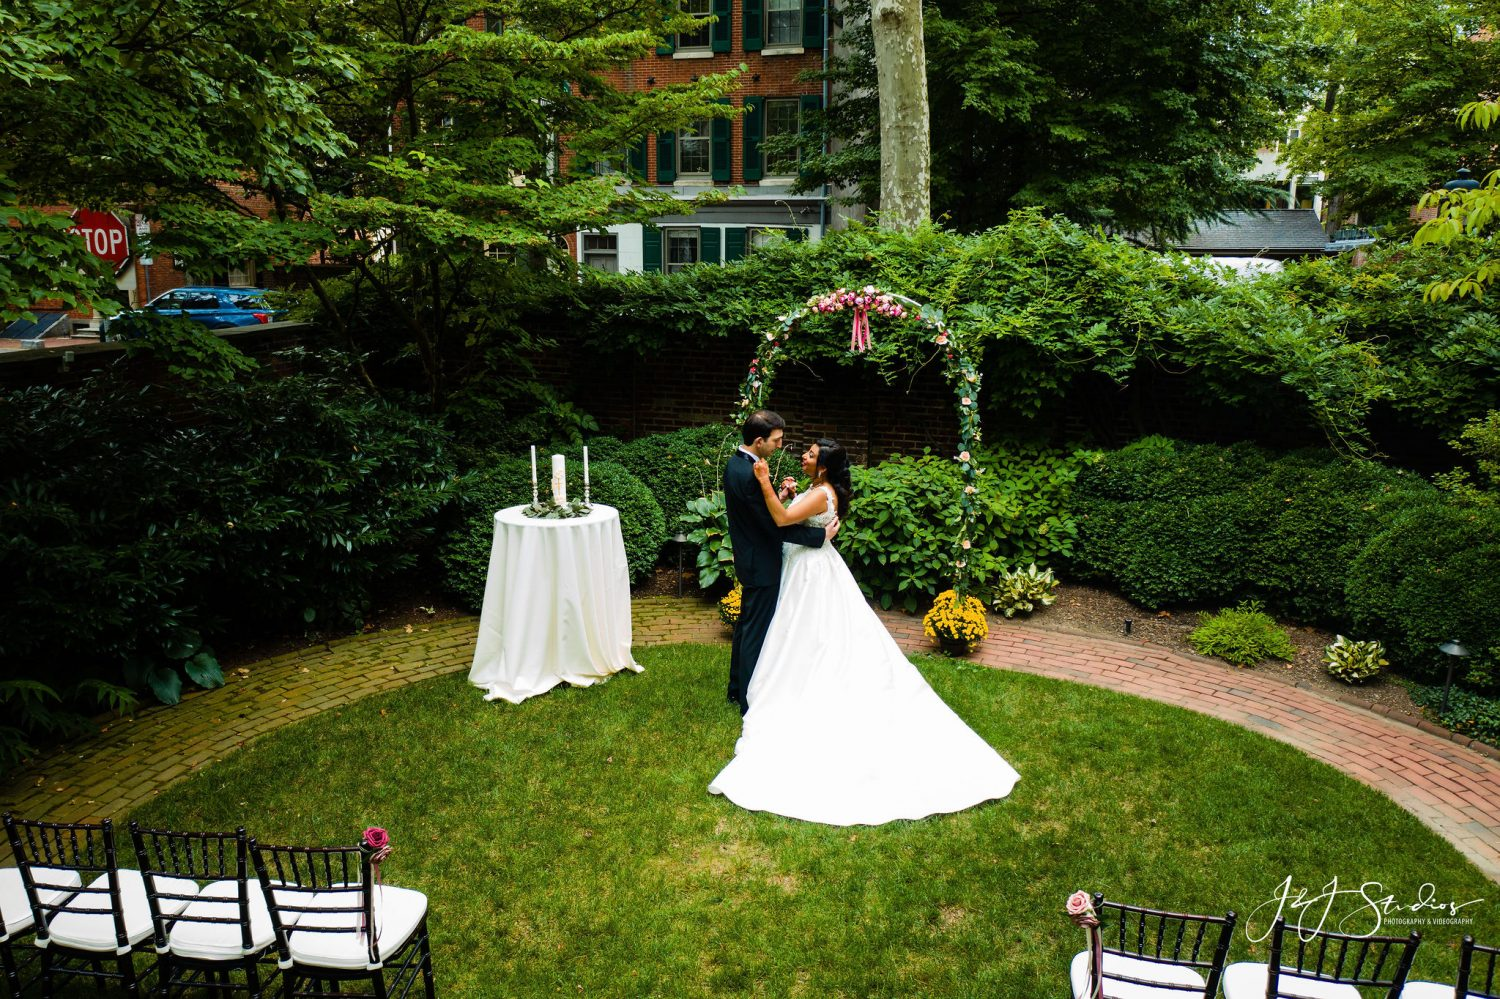 Bride and Groom Hill Physick House PA Wedding Venues